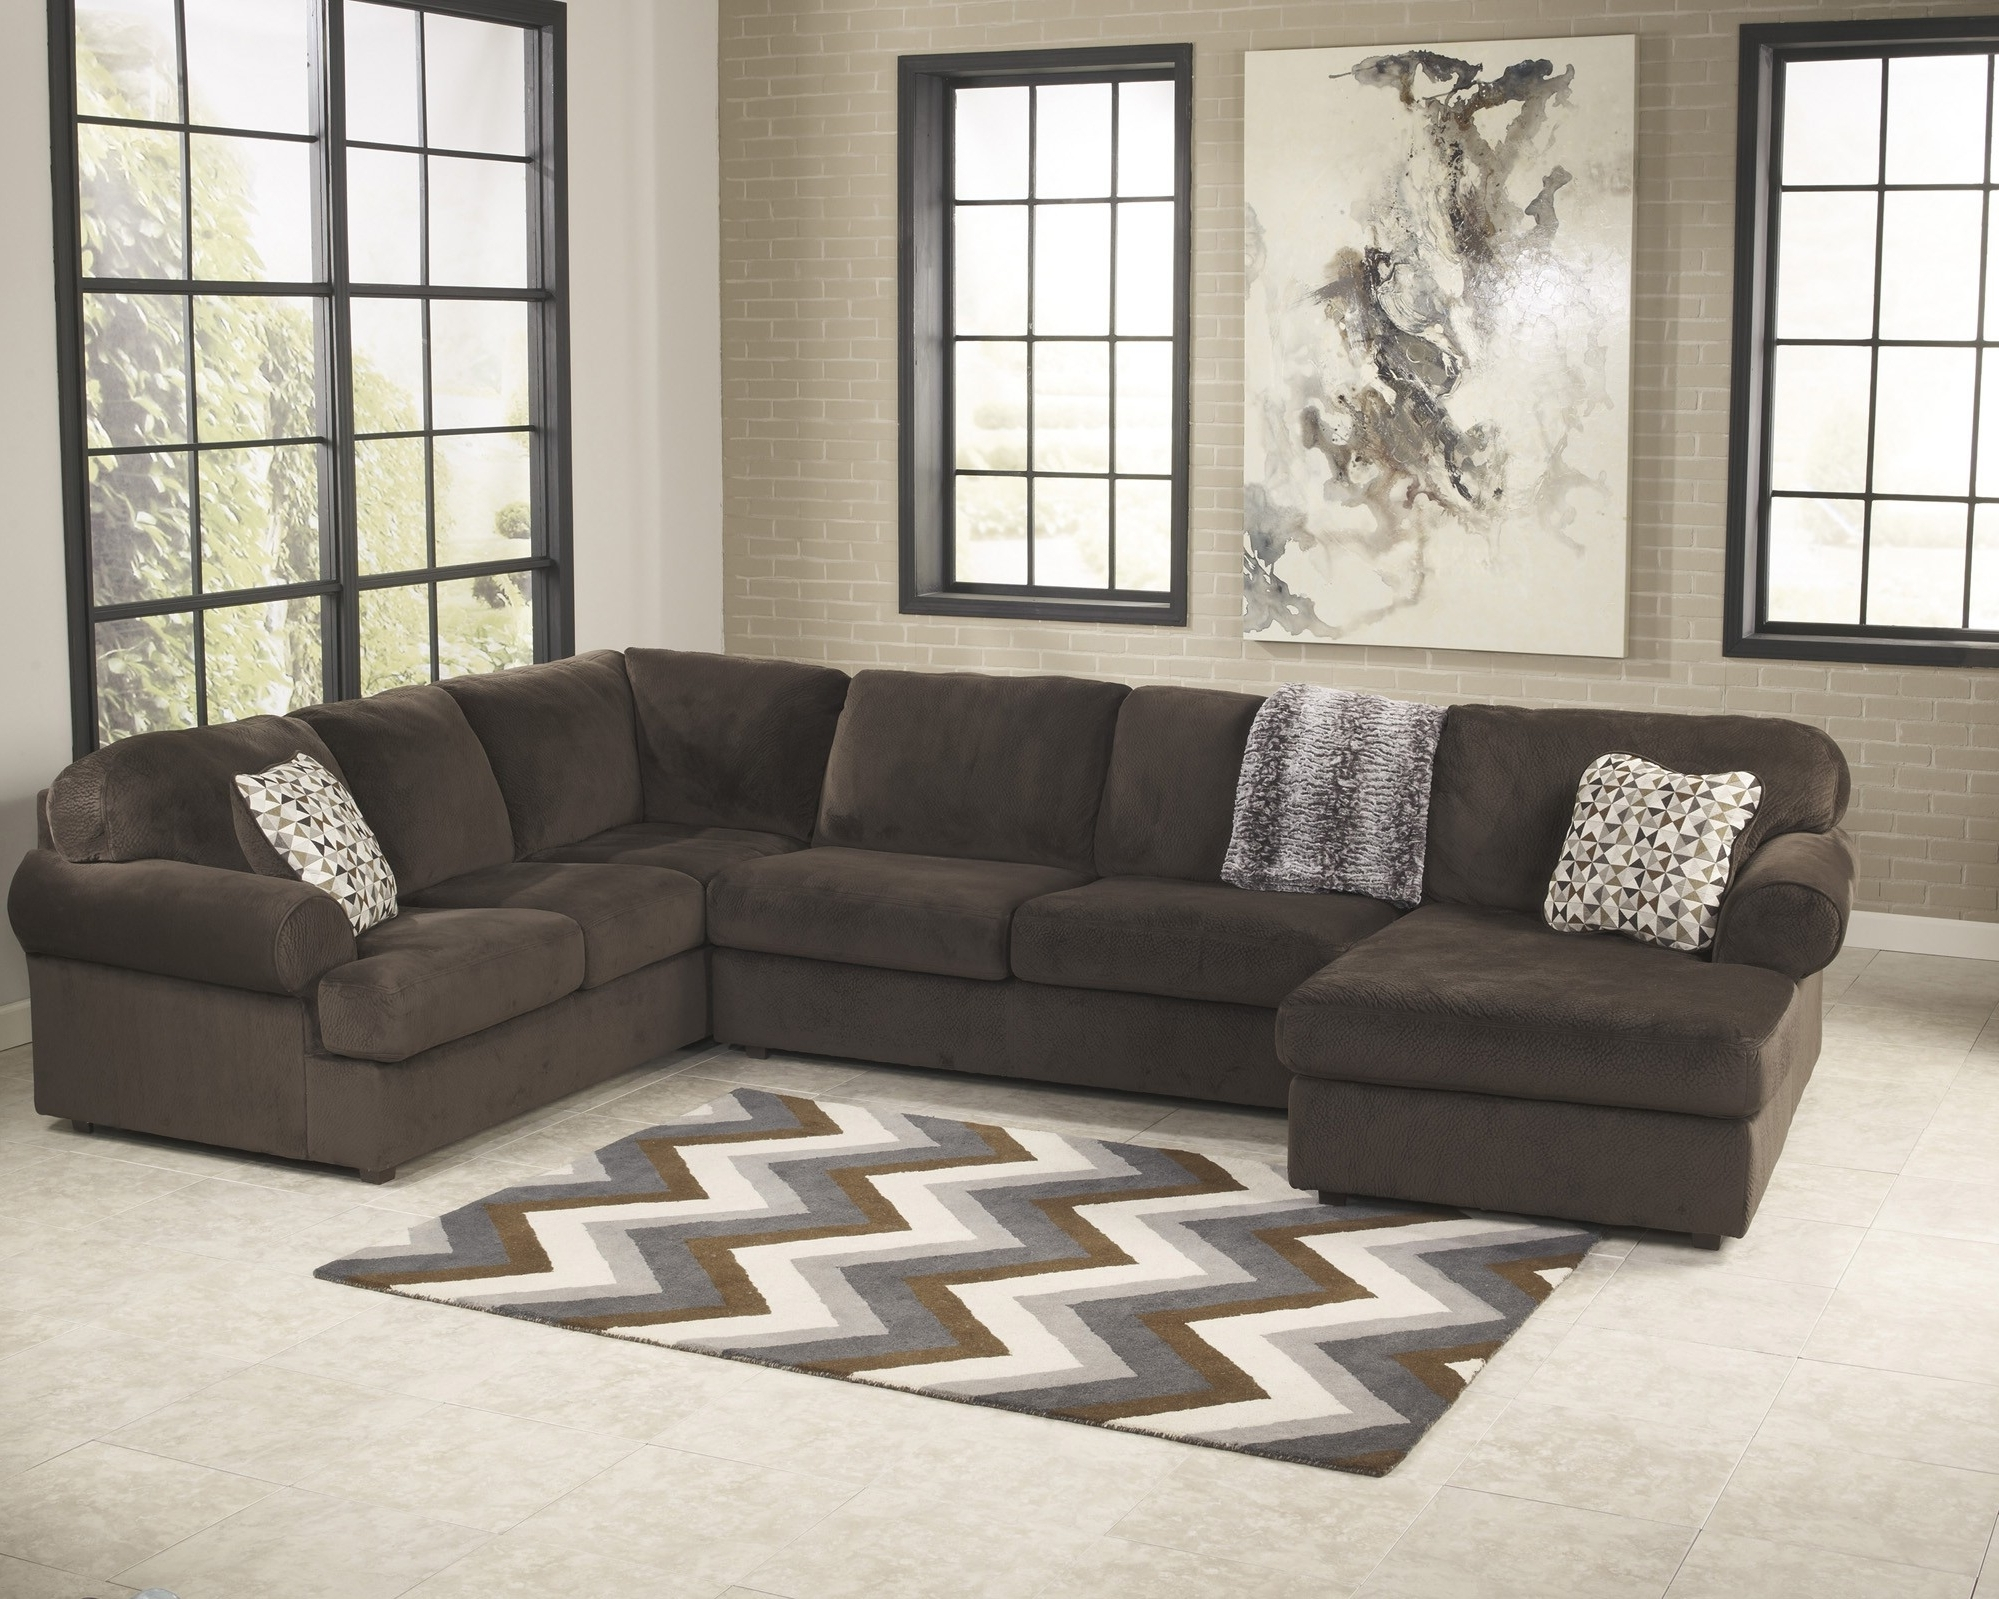 Well Known Sectional Sofas That Come In Pieces Throughout Jessa Place Chocolate 3 Piece Sectional Sofa For $ (View 13 of 15)